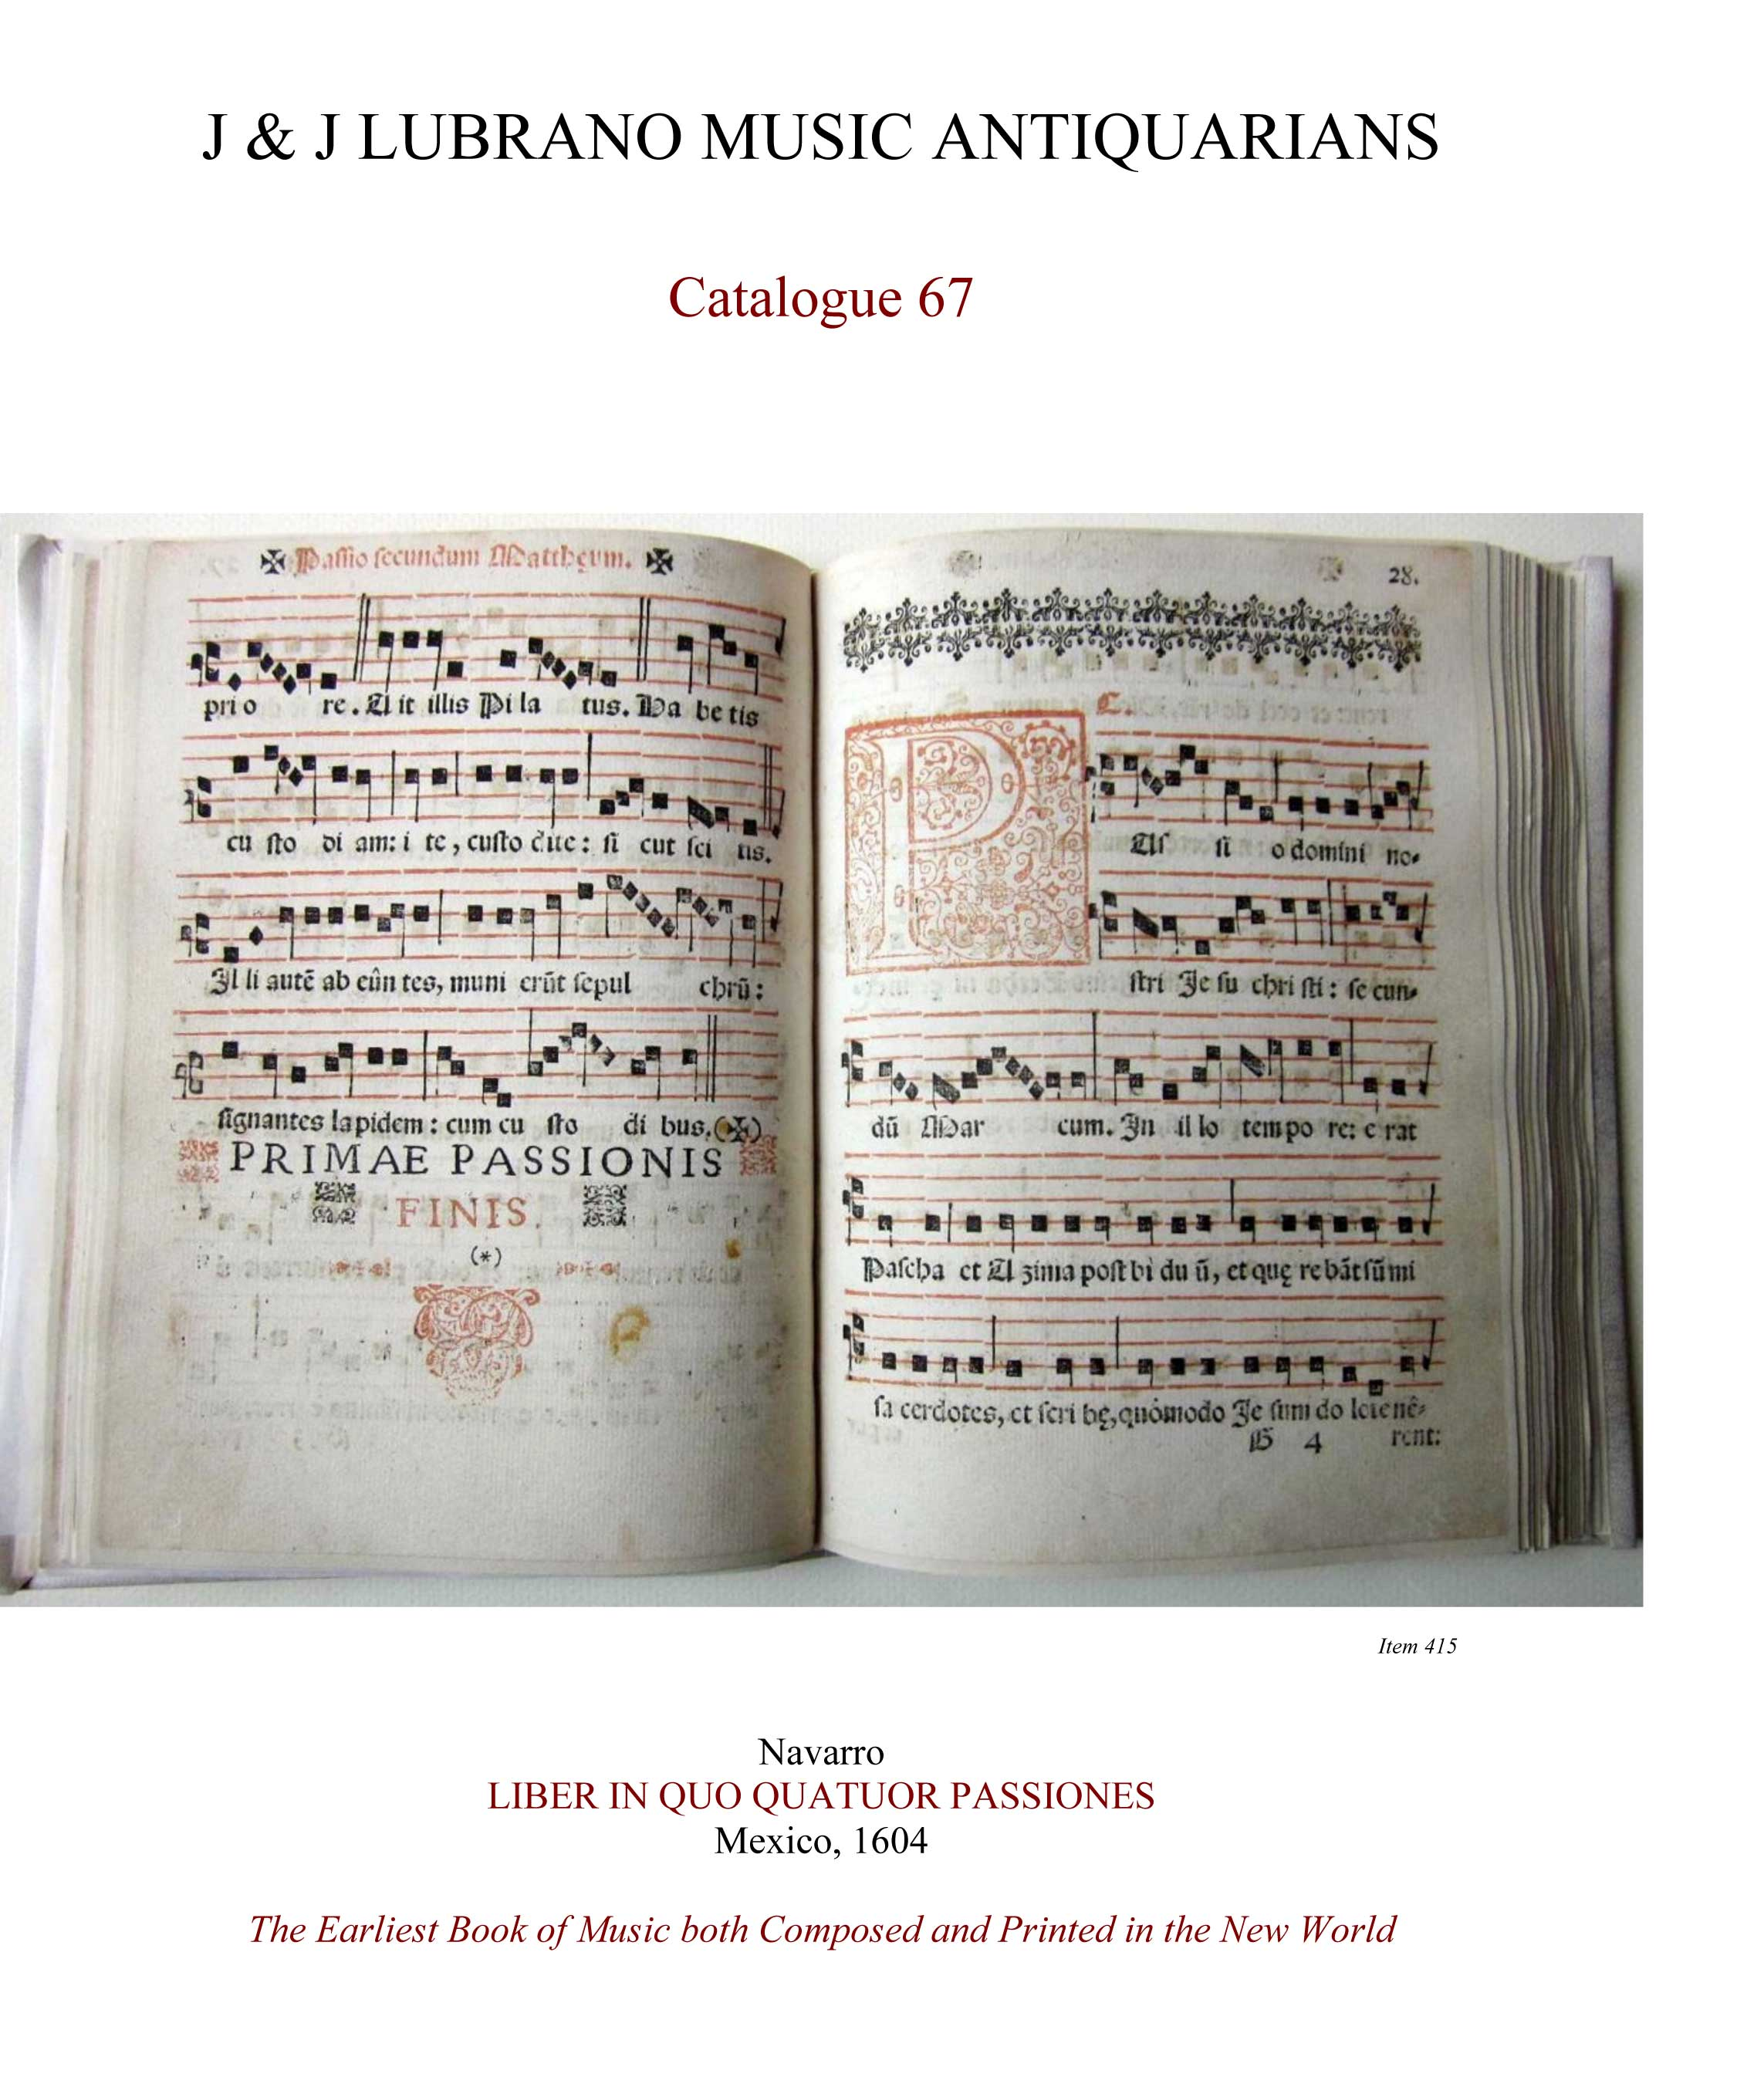 Catalogue 67